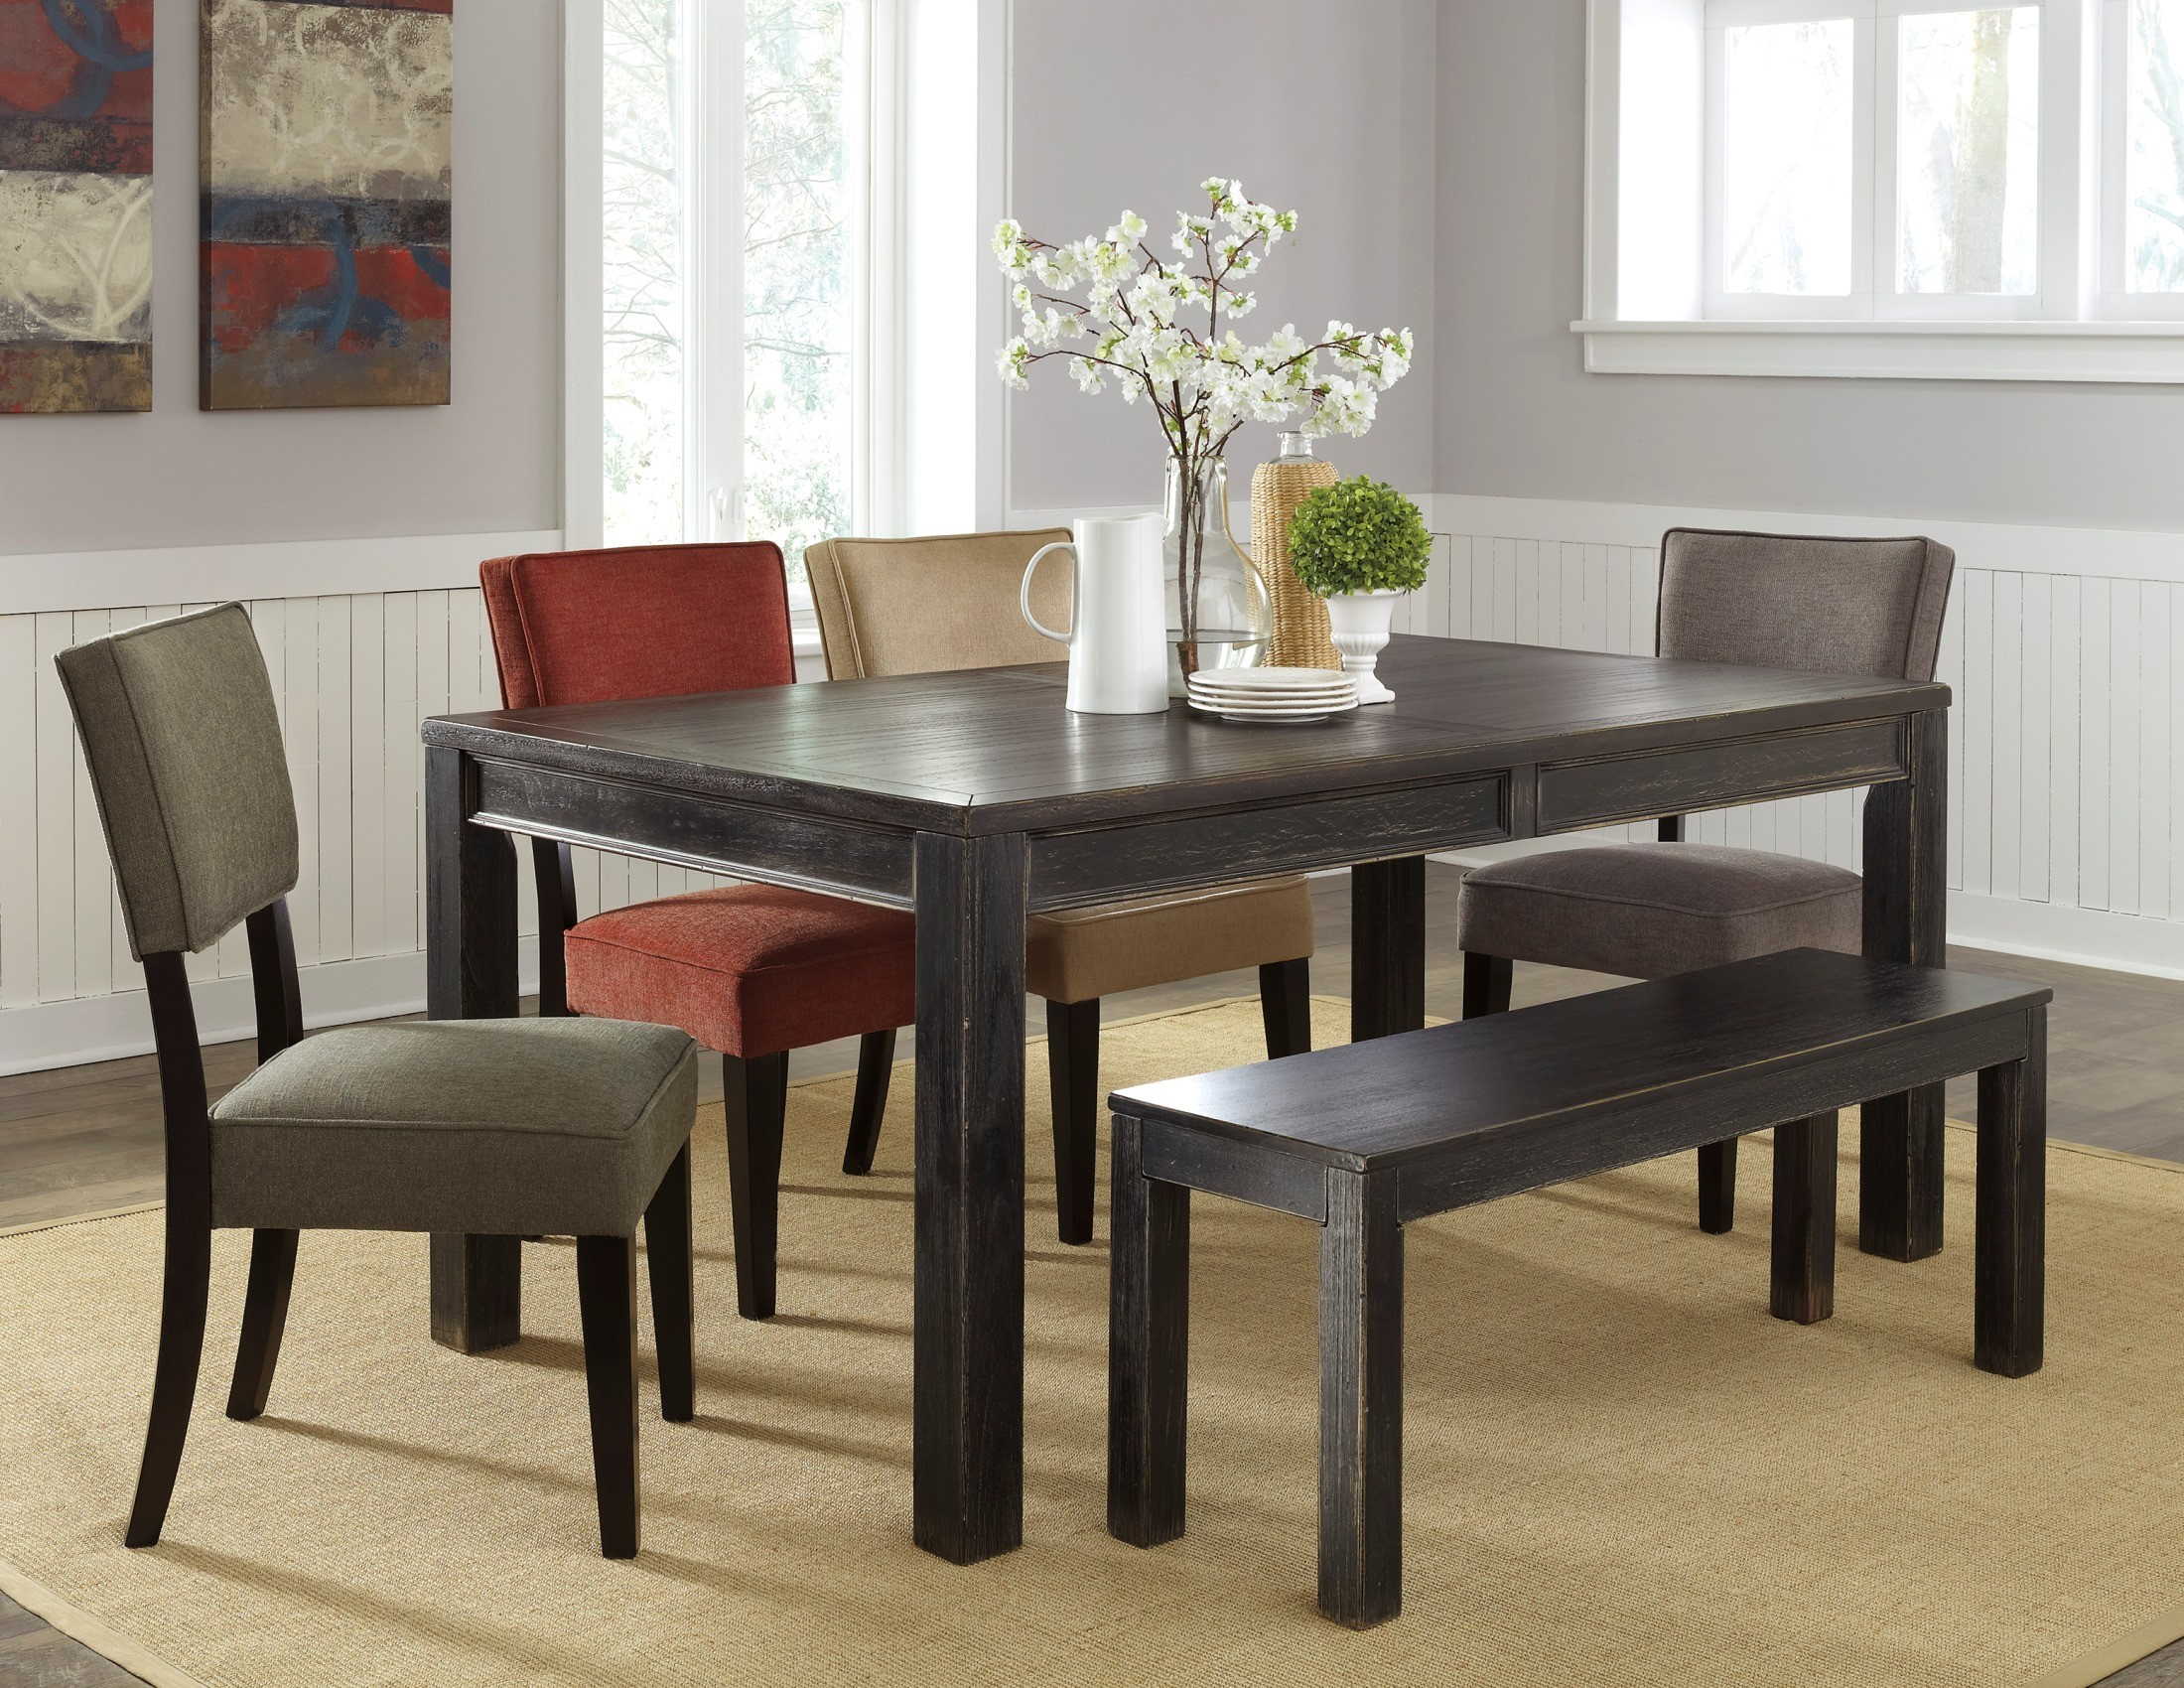 Gavelston Rectangular Dining Room Table from Ashley (D532-25) | Coleman Furniture